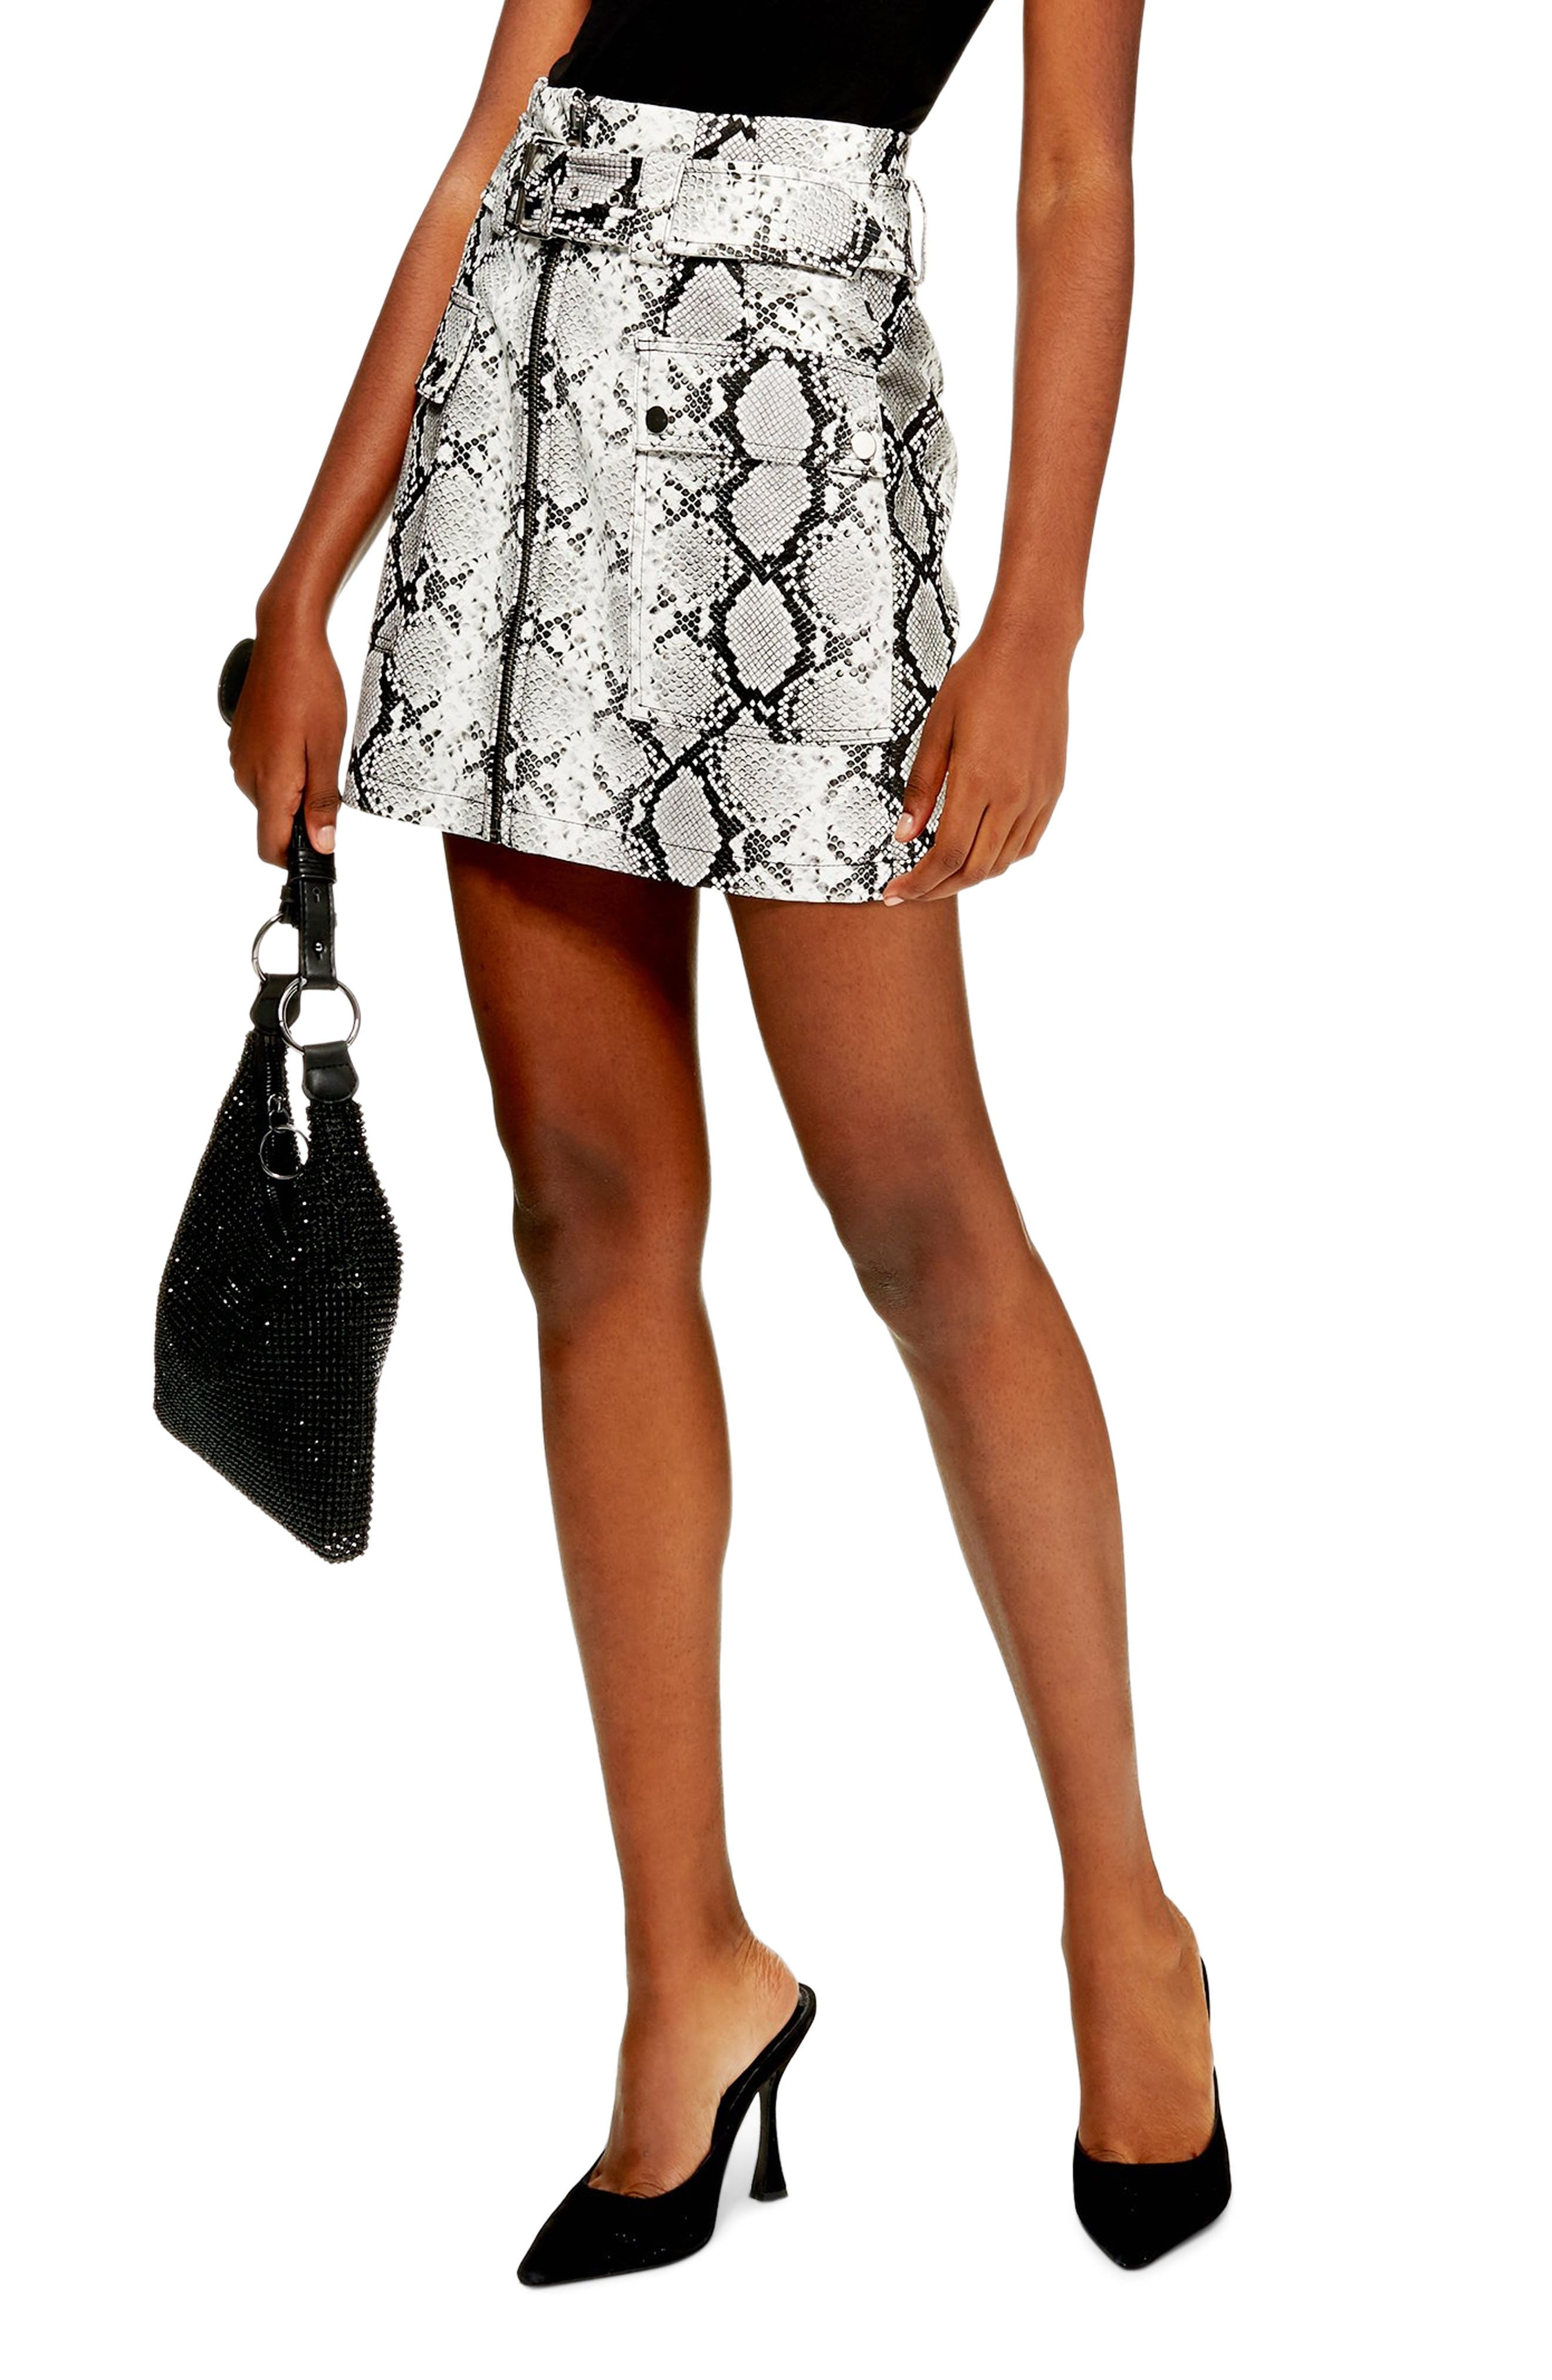 Topshop Belted Faux Leather Snake Print Miniskirt, US (fits like 2-4) - White